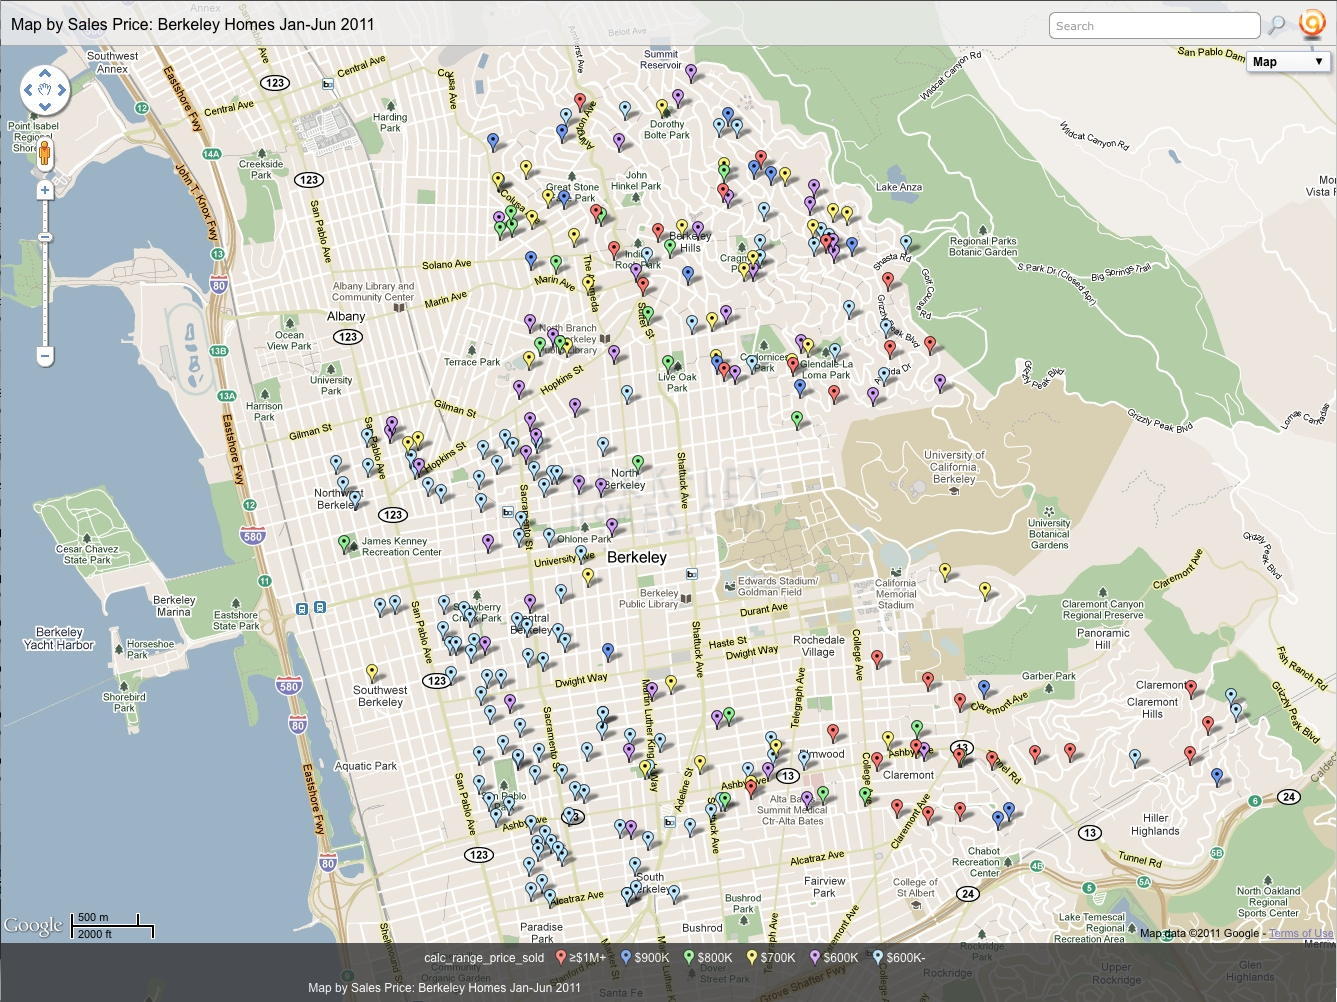 map-berkeley-mls-research-2011-01-06-single-family-home-sales-price